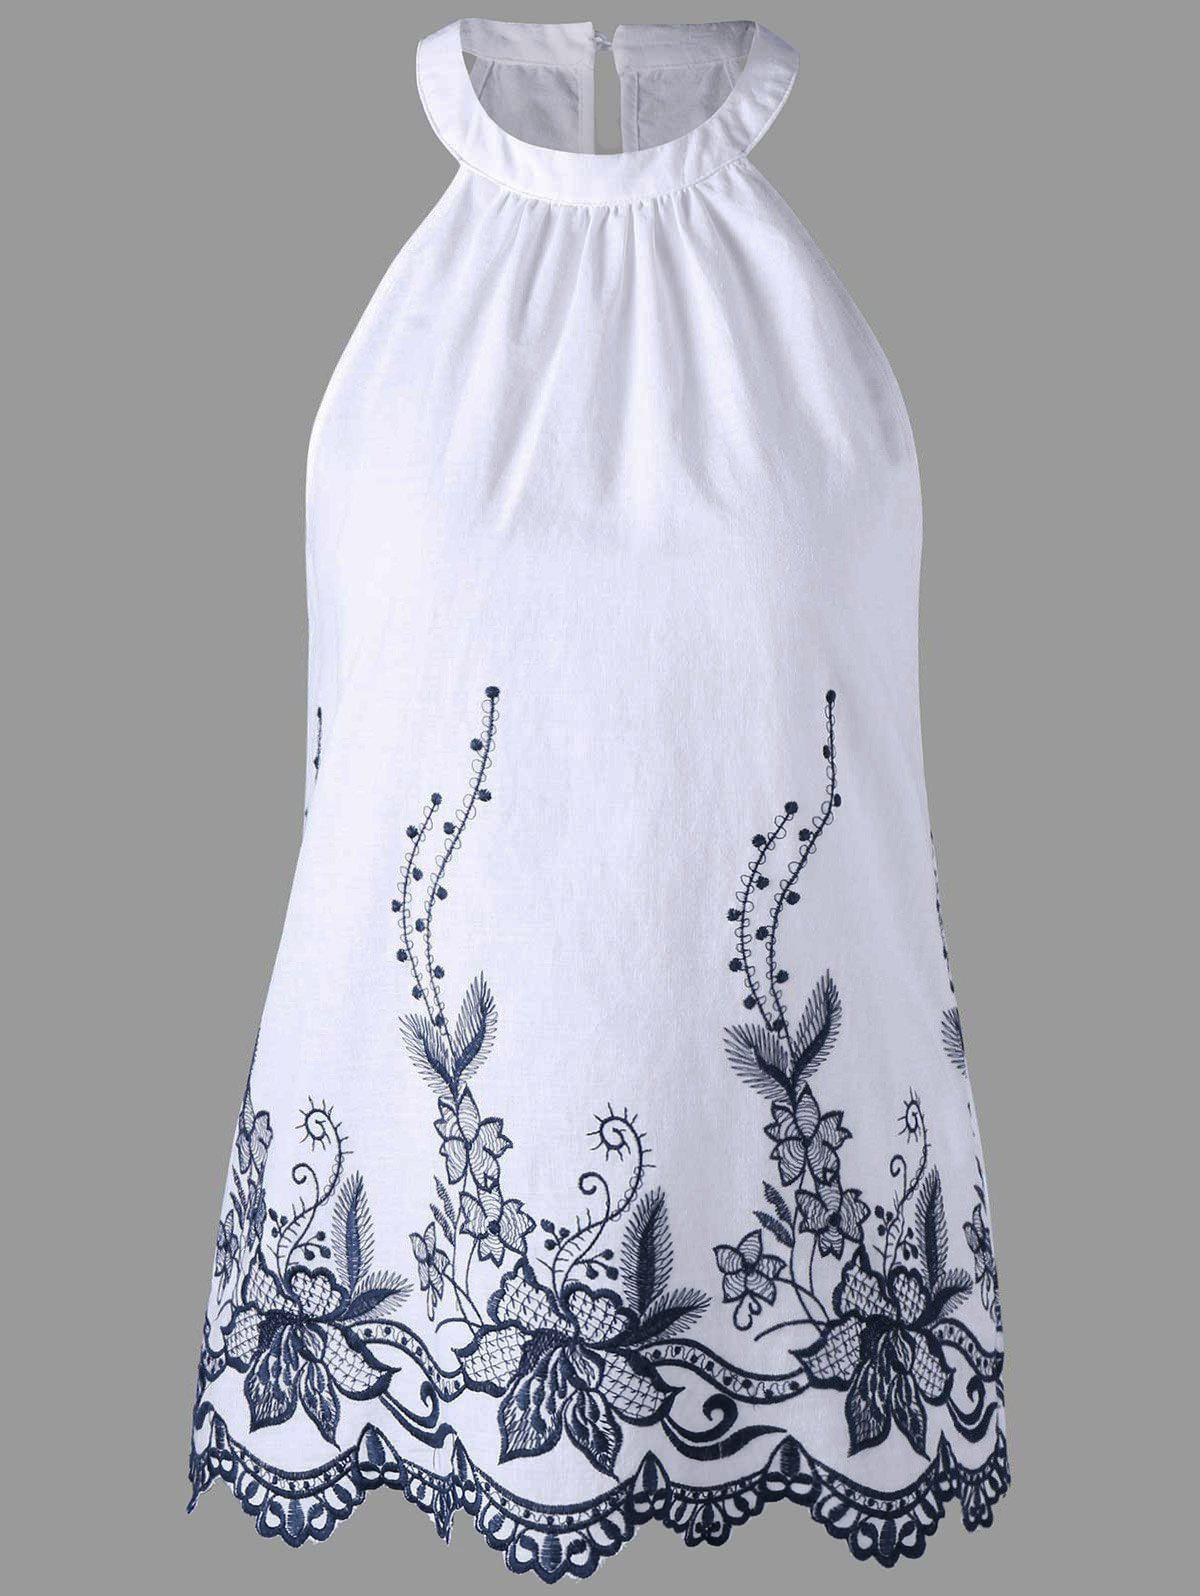 Sleeveless Embroidery Scalloped Edge BlouseWOMEN<br><br>Size: L; Color: WHITE; Occasion: Casual ,Party; Style: Casual; Material: Rayon; Shirt Length: Regular; Sleeve Length: Sleeveless; Collar: Round Neck; Pattern Type: Flower; Season: Summer; Weight: 0.1360kg; Package Contents: 1 x Blouse;